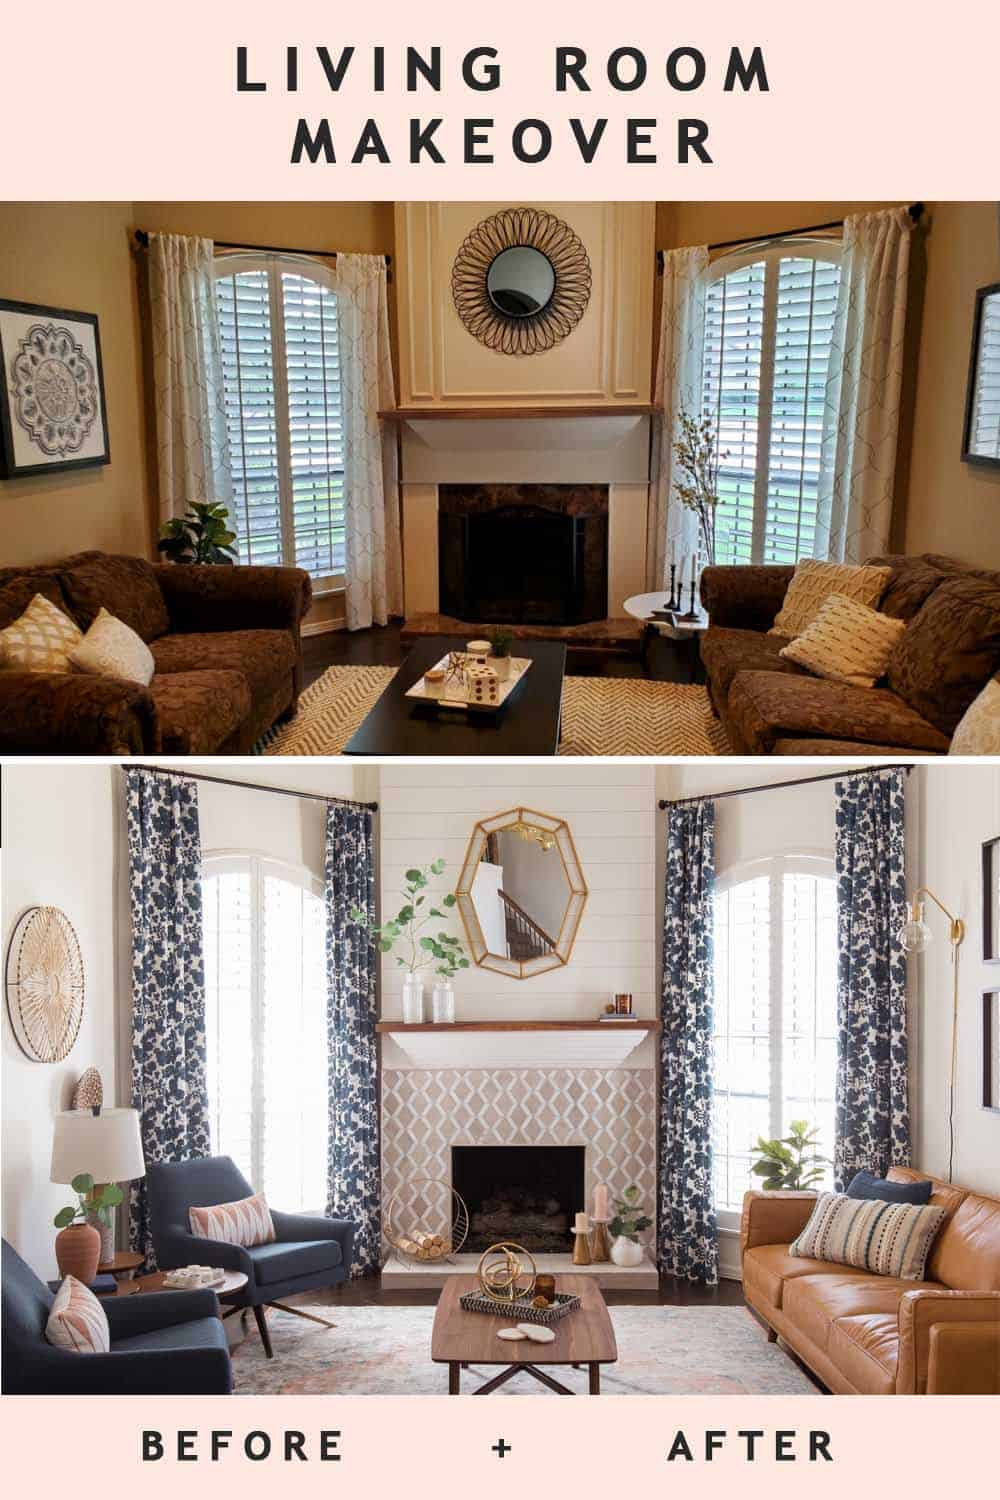 photo of the before and after living room makeover by top Houston lifestyle blogger Ashley Rose of Sugar & Cloth